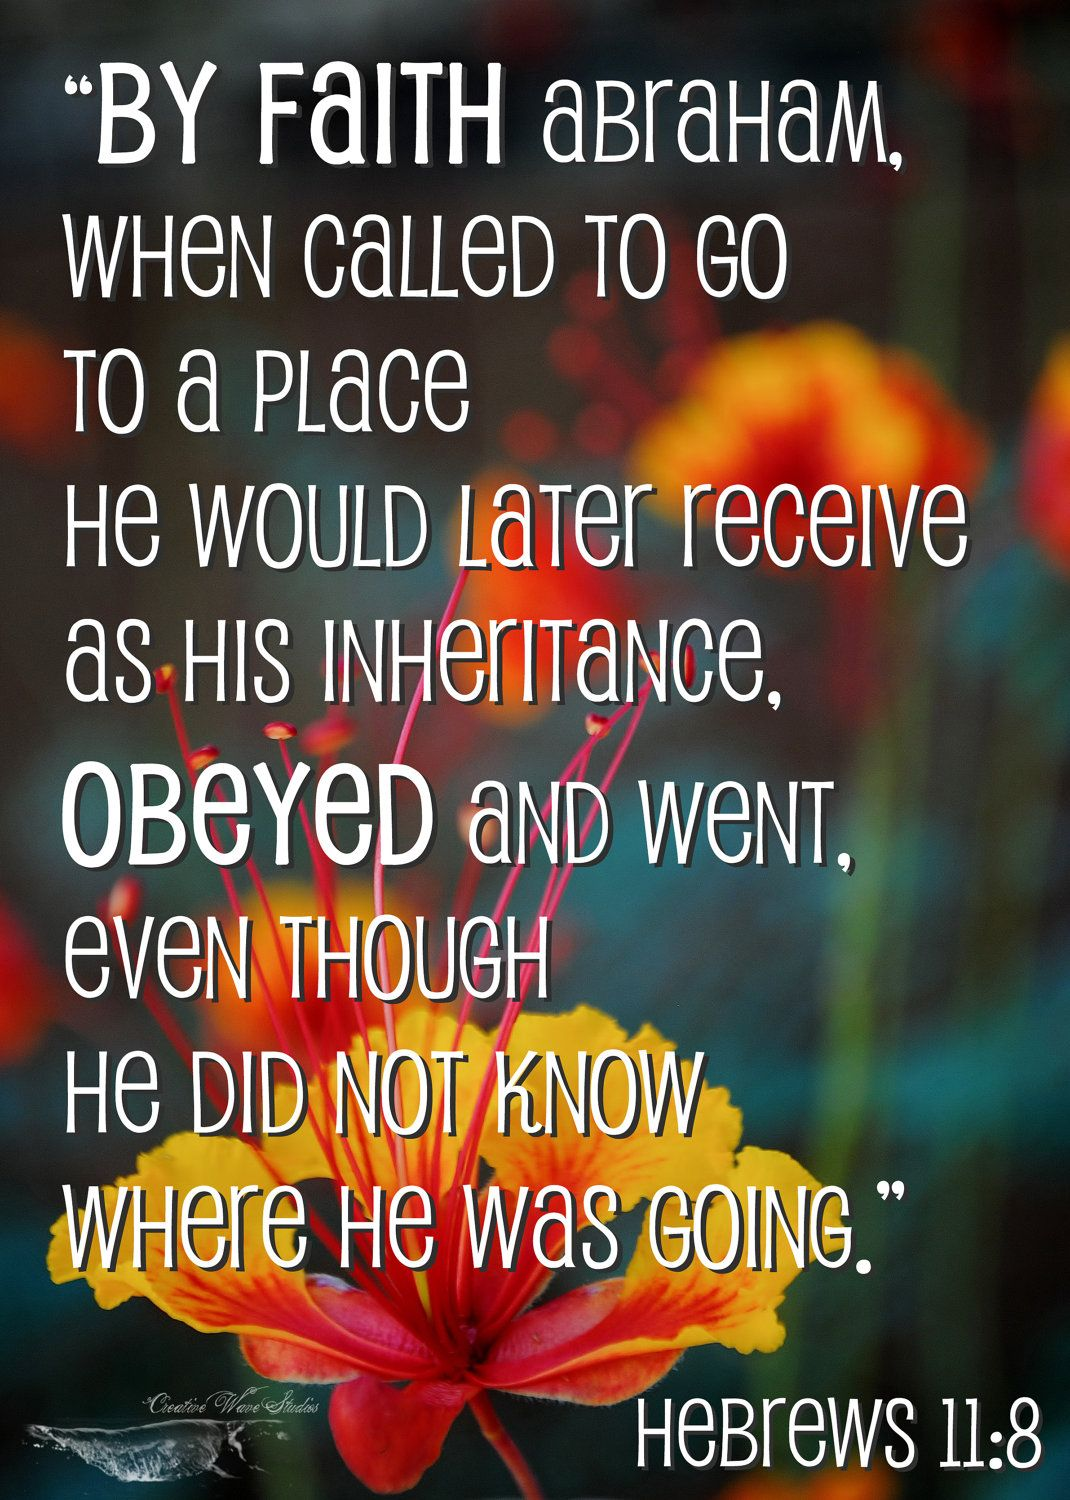 We can truly trust God Study how to place trust in Yahweh